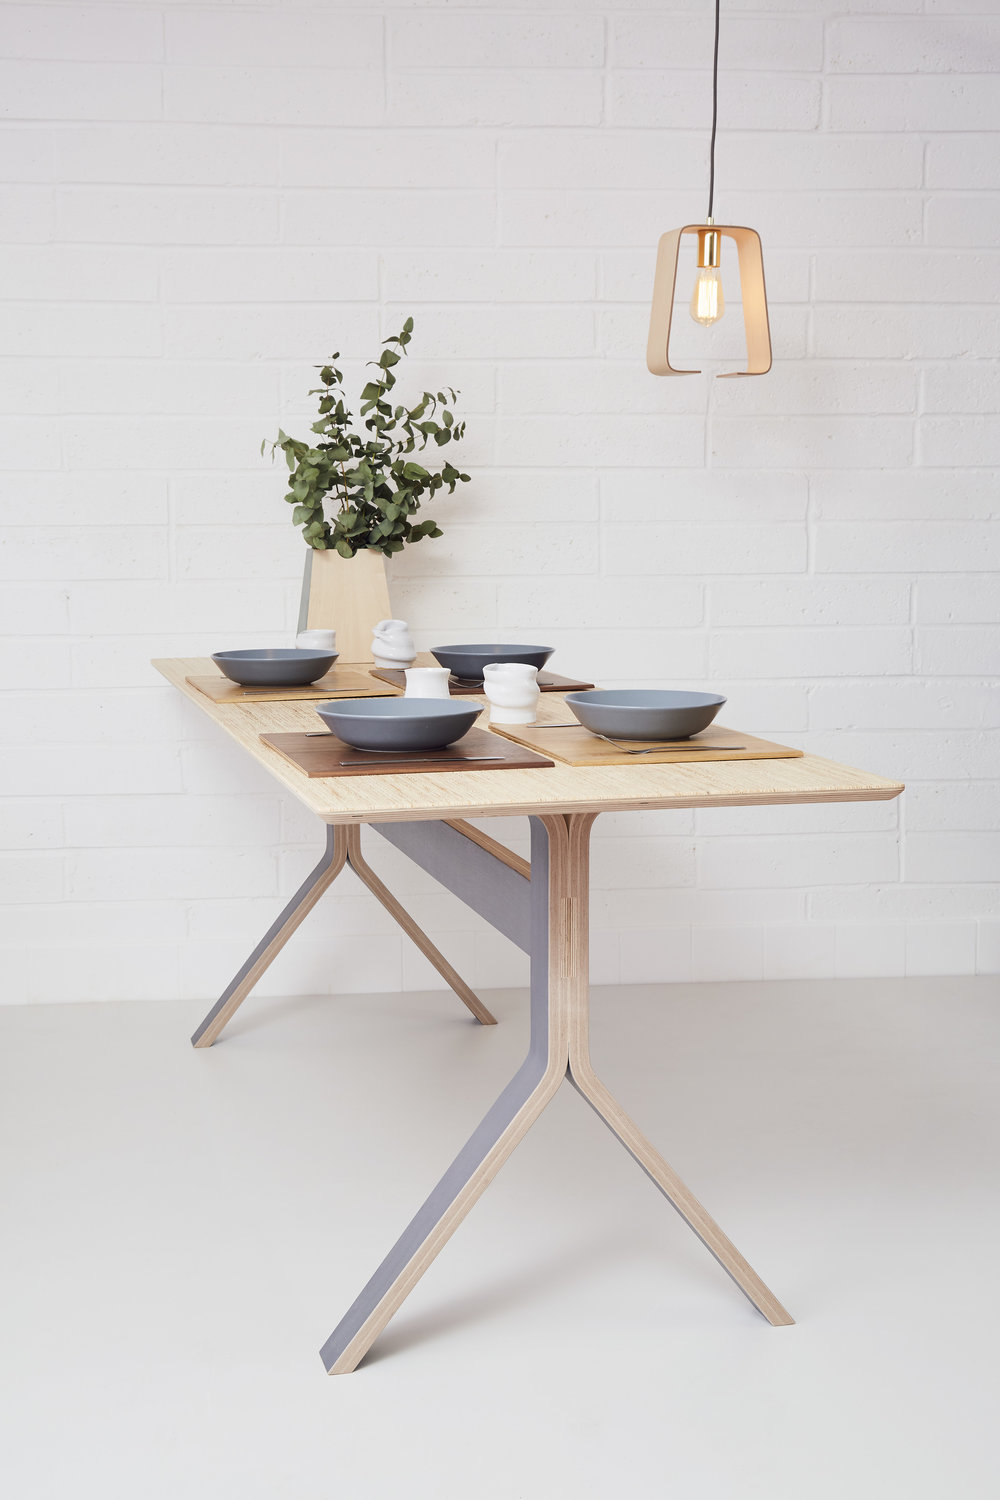 Table (from £870), Fab pendant lamp in Oak and Brass (£90), Erlen Planter (£45)